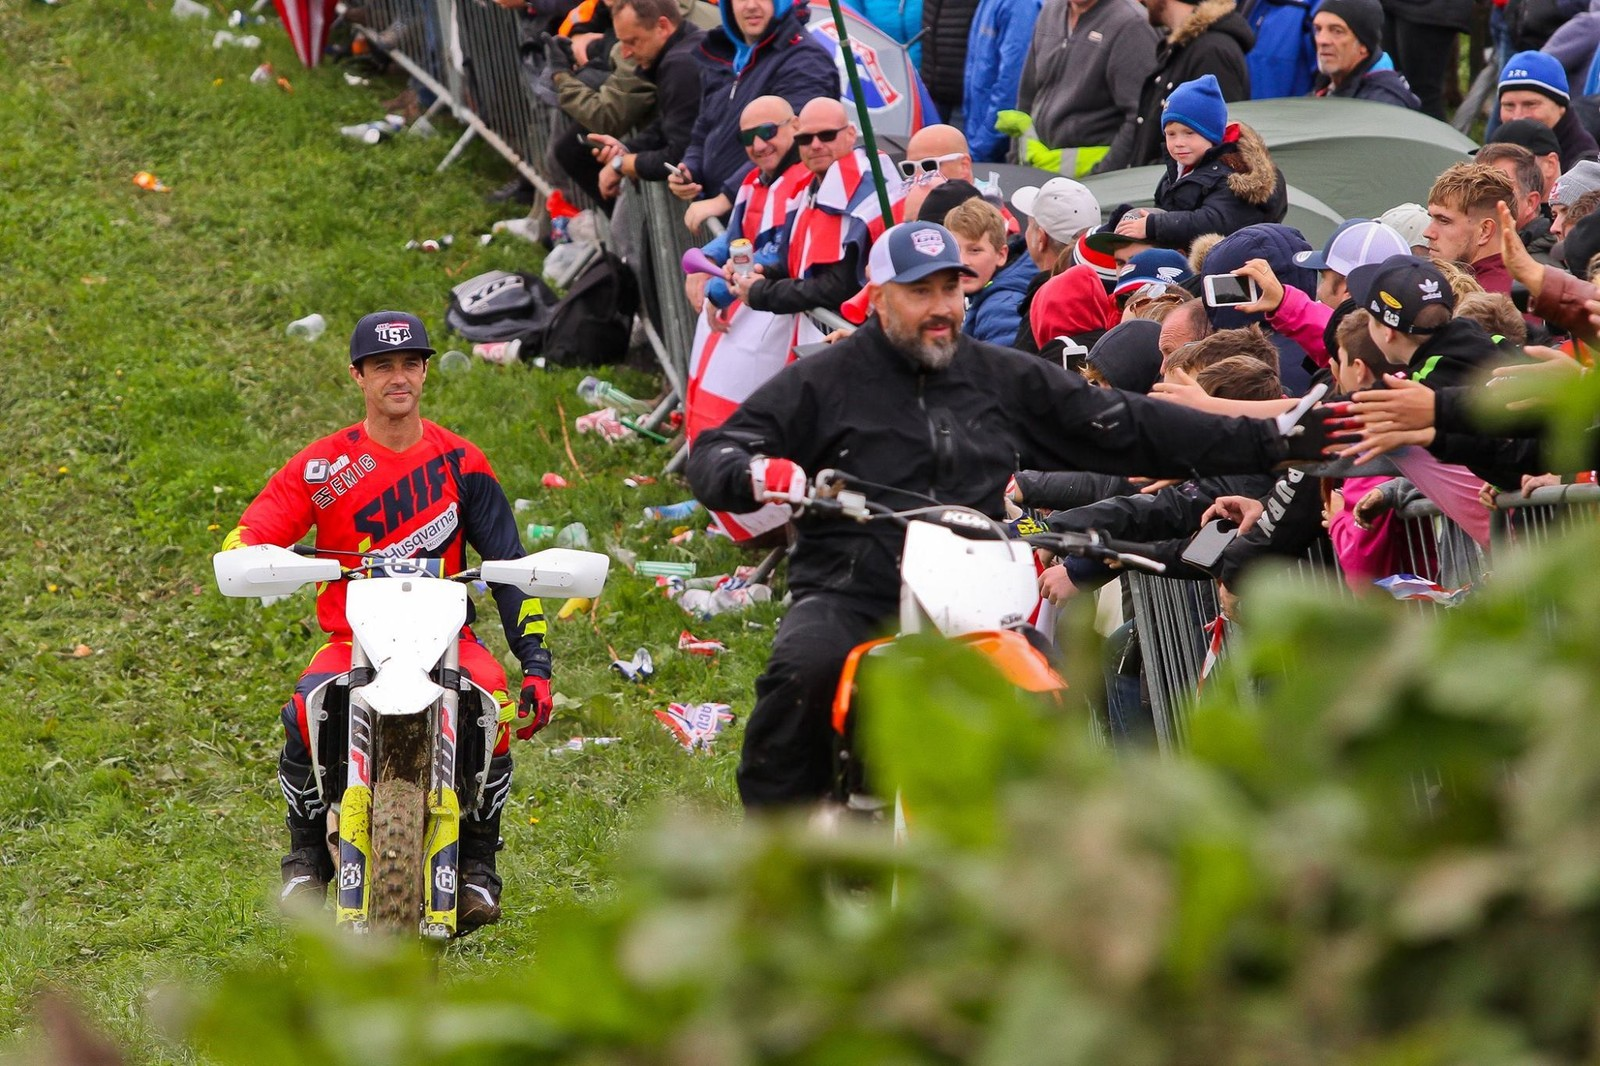 Conditions on the track meant that the Legend's Lap just circled next to the spectators, but it's always good to see these guys swinging a leg over a dirtbike. Pictured here are Jamie Dobb and Jeff Emig.